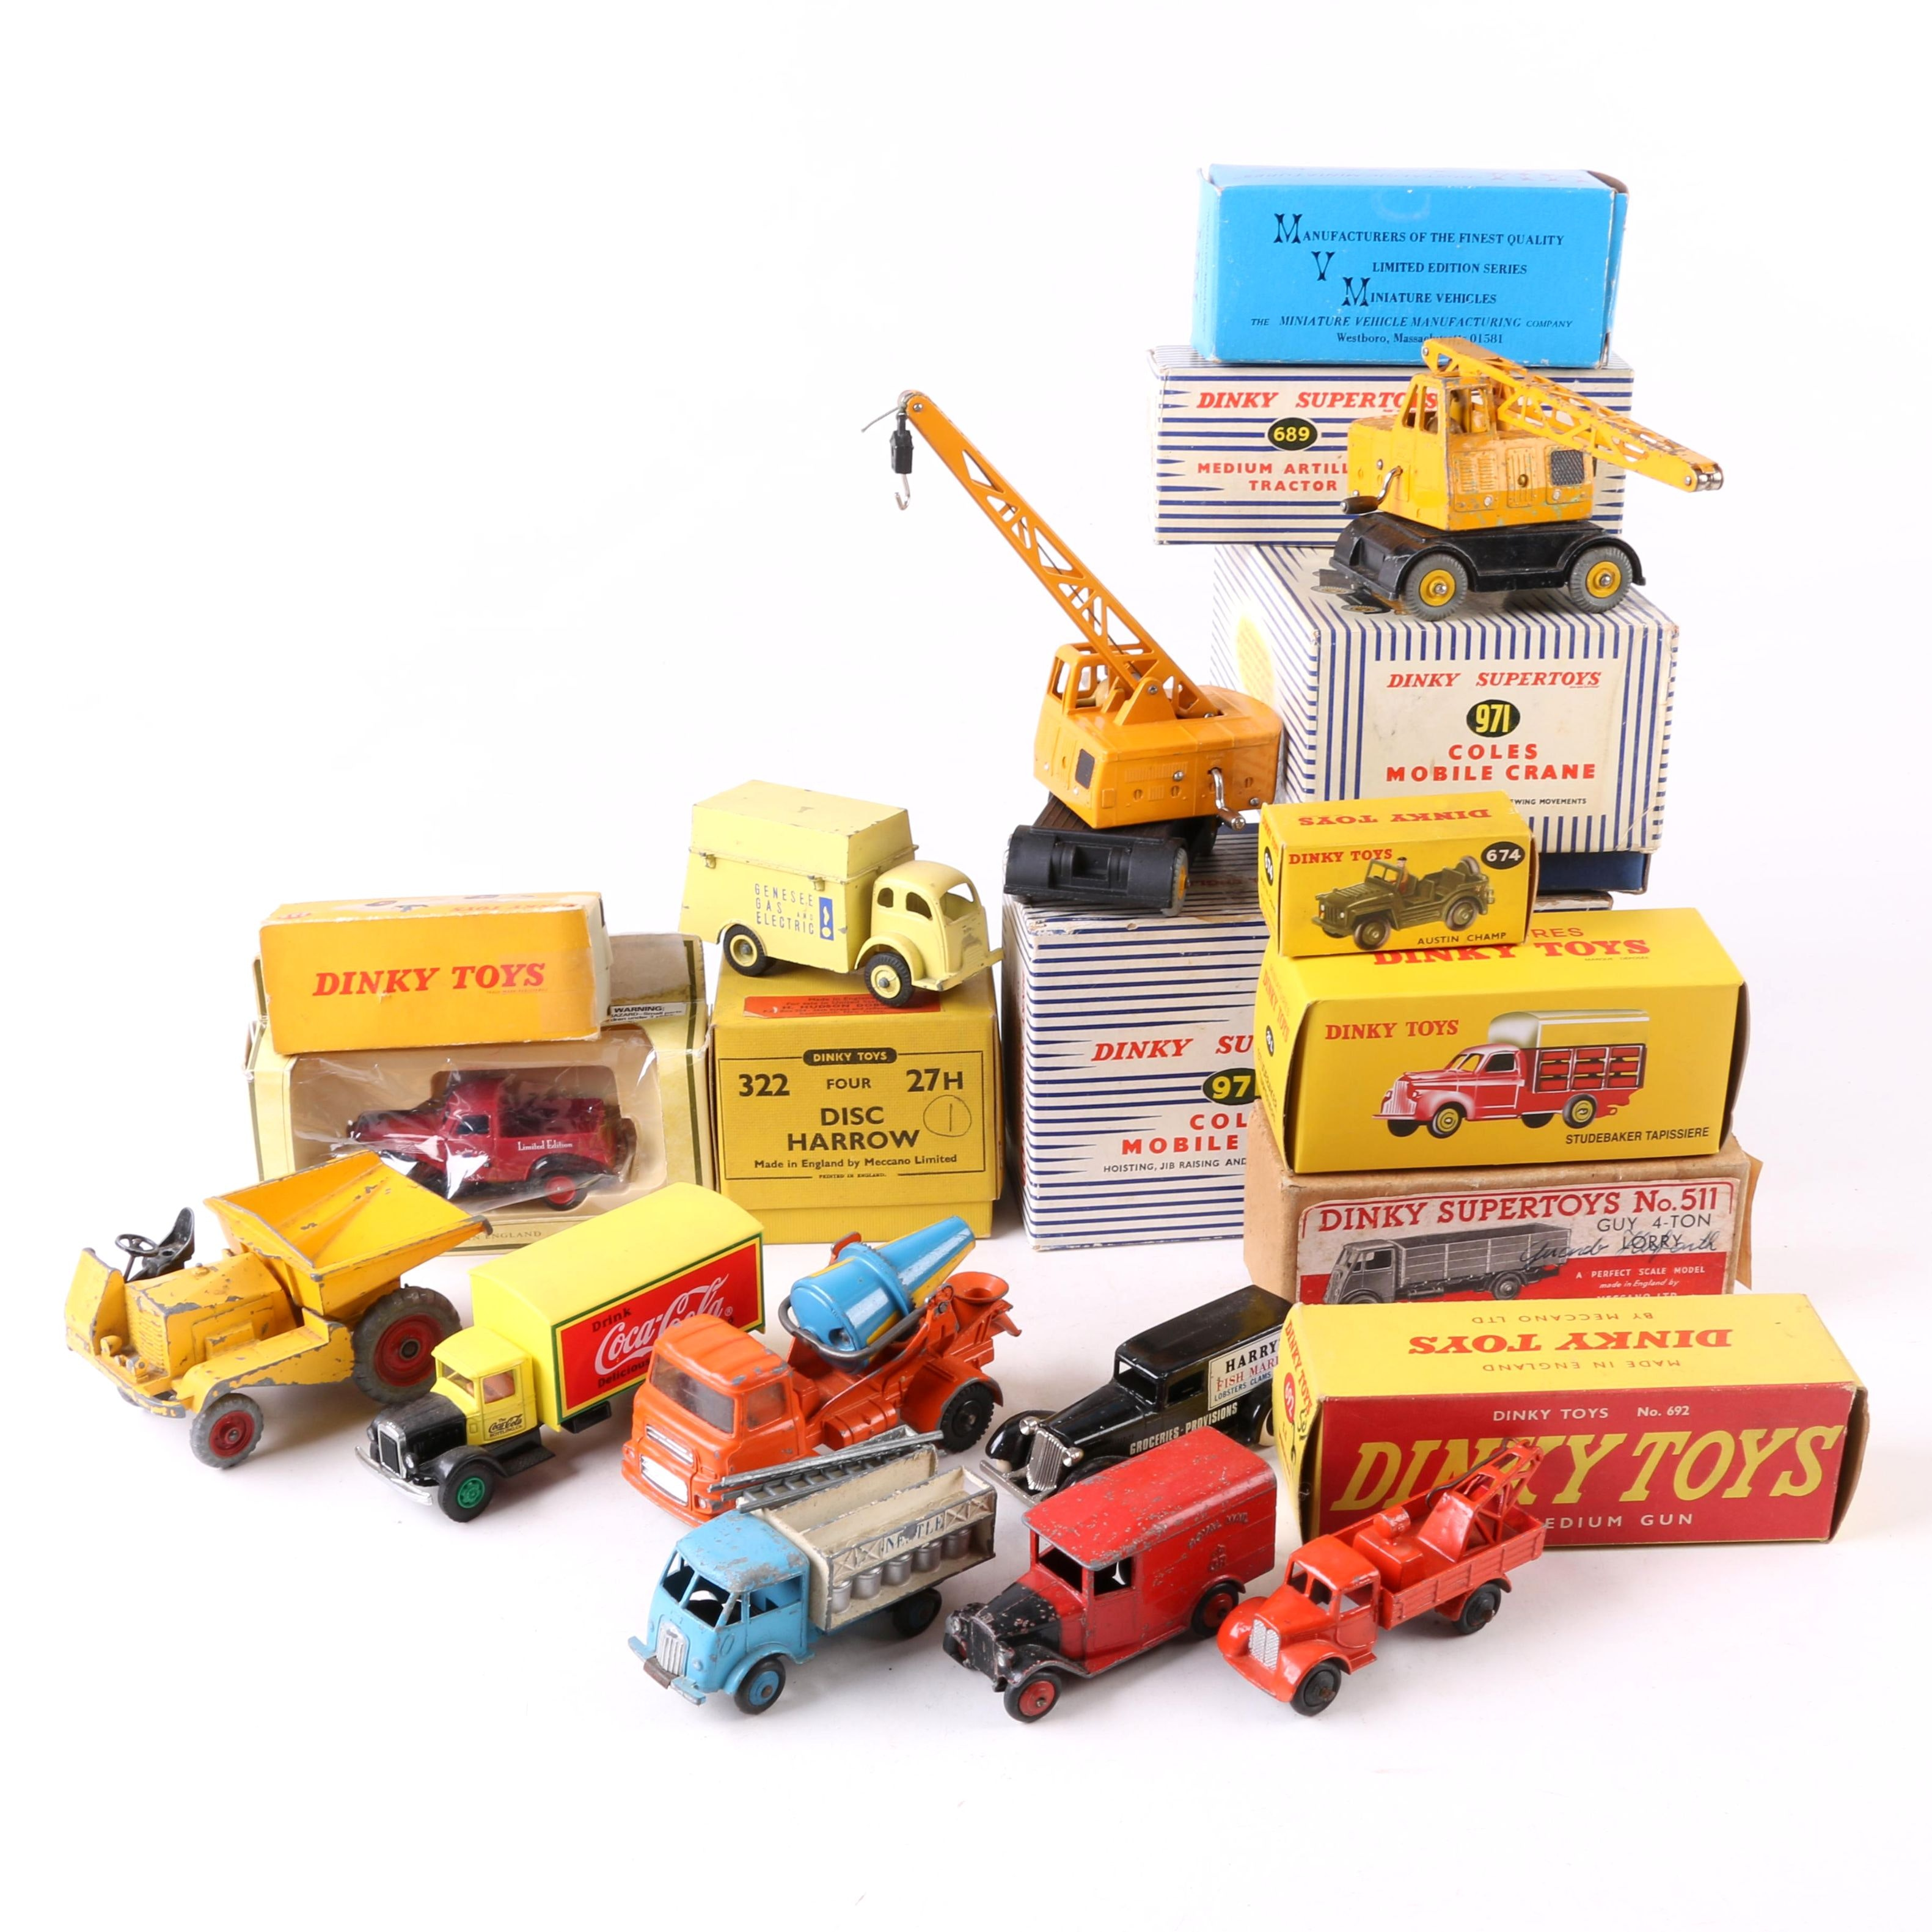 Vintage Die-Cast Vehicles including Dinky Toys